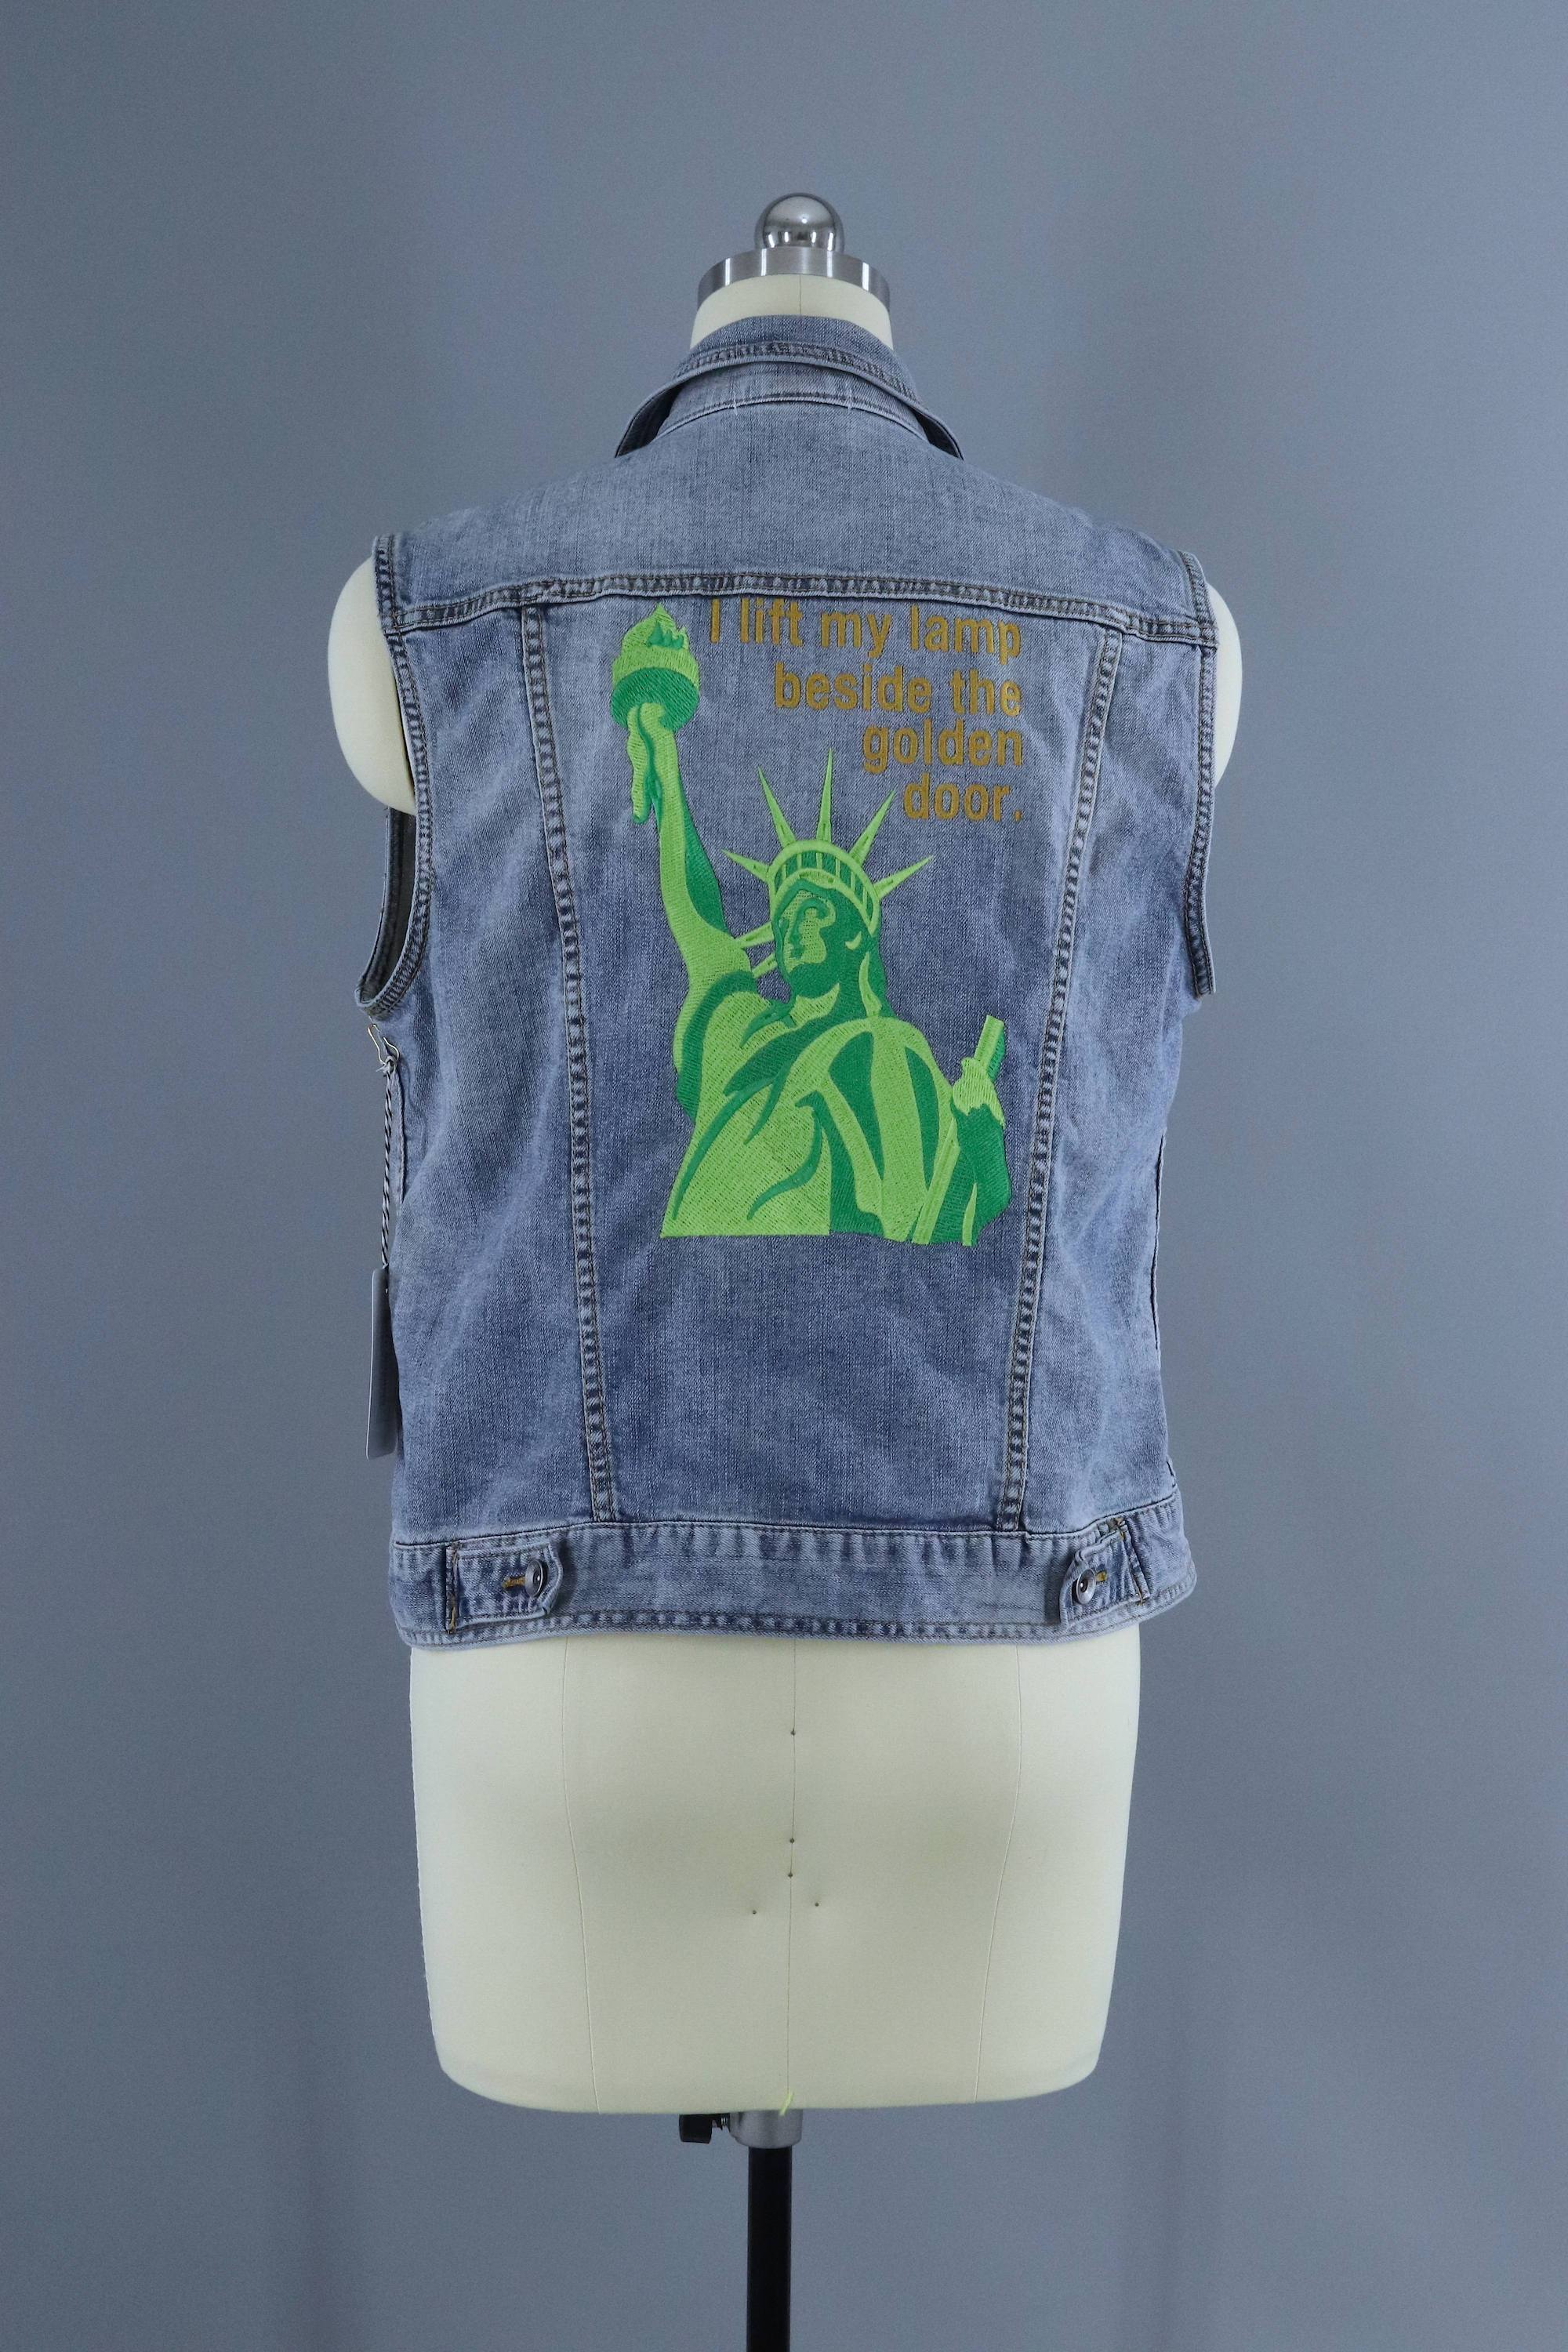 Captivating Lady Liberty Embroidered Denim Vest Jacket / I Lift My Lamp Beside The Golden  Door